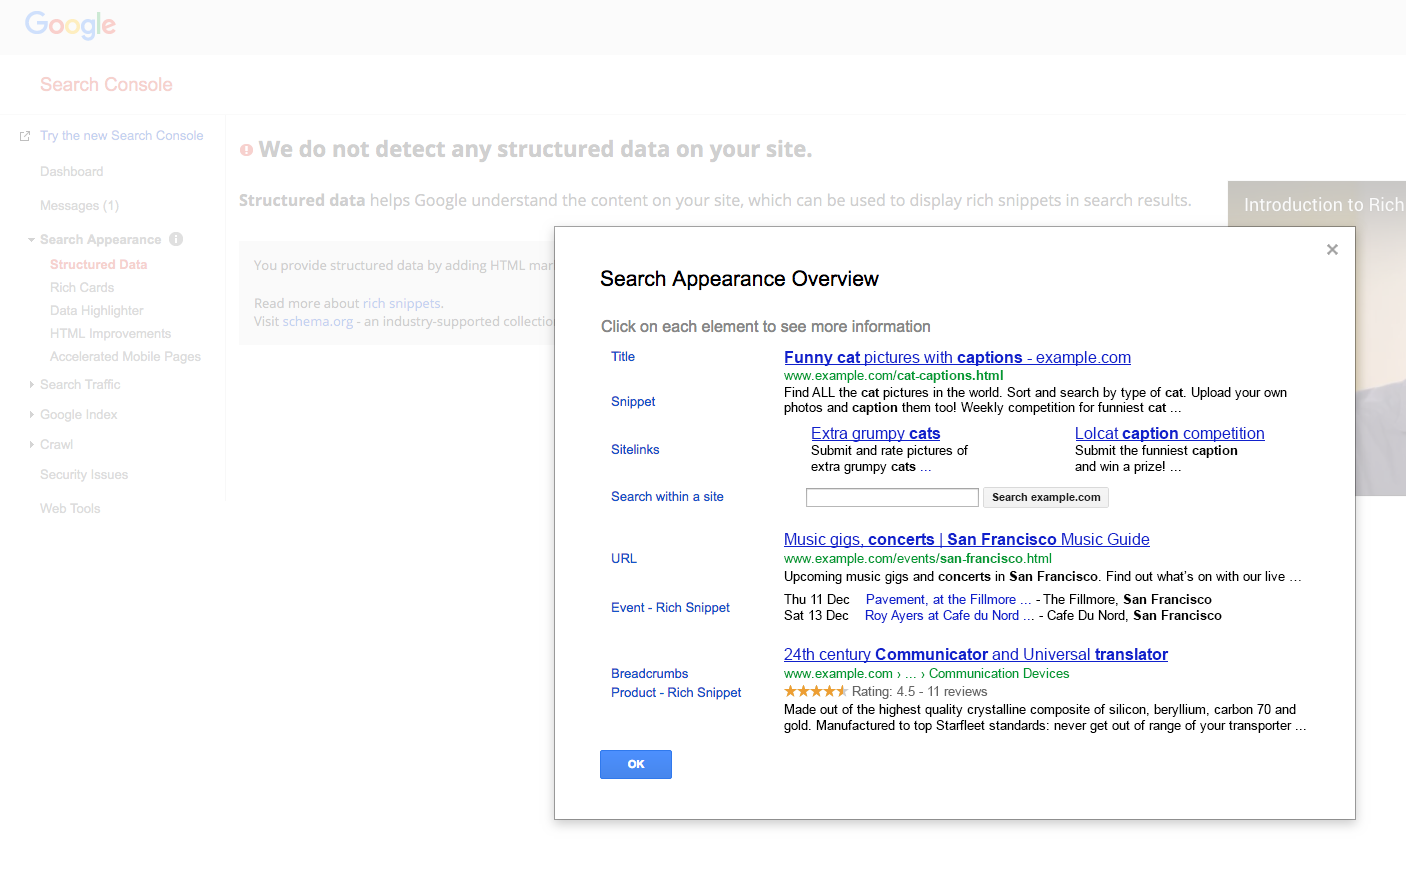 Search Appearance information on Google Search Console